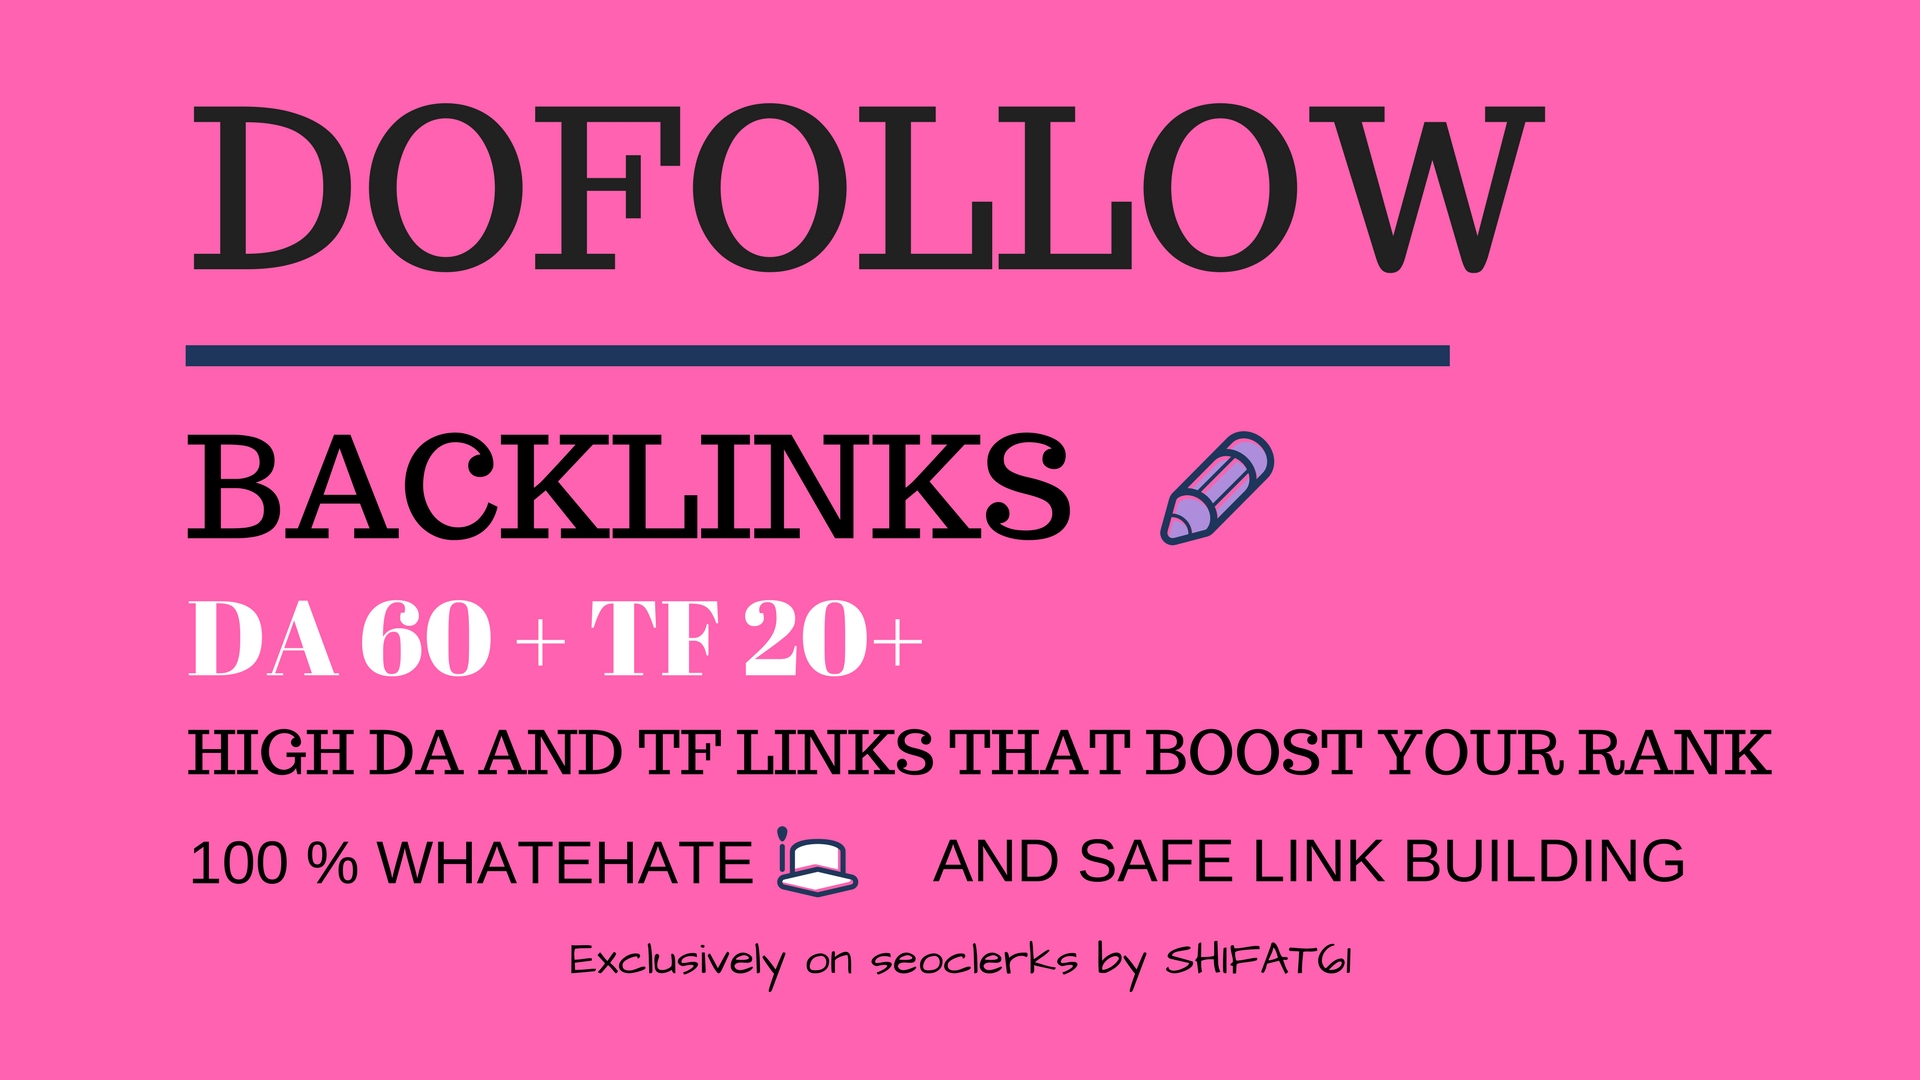 60 Dofollow SEO Backlinks, Boost Your Google Ranking